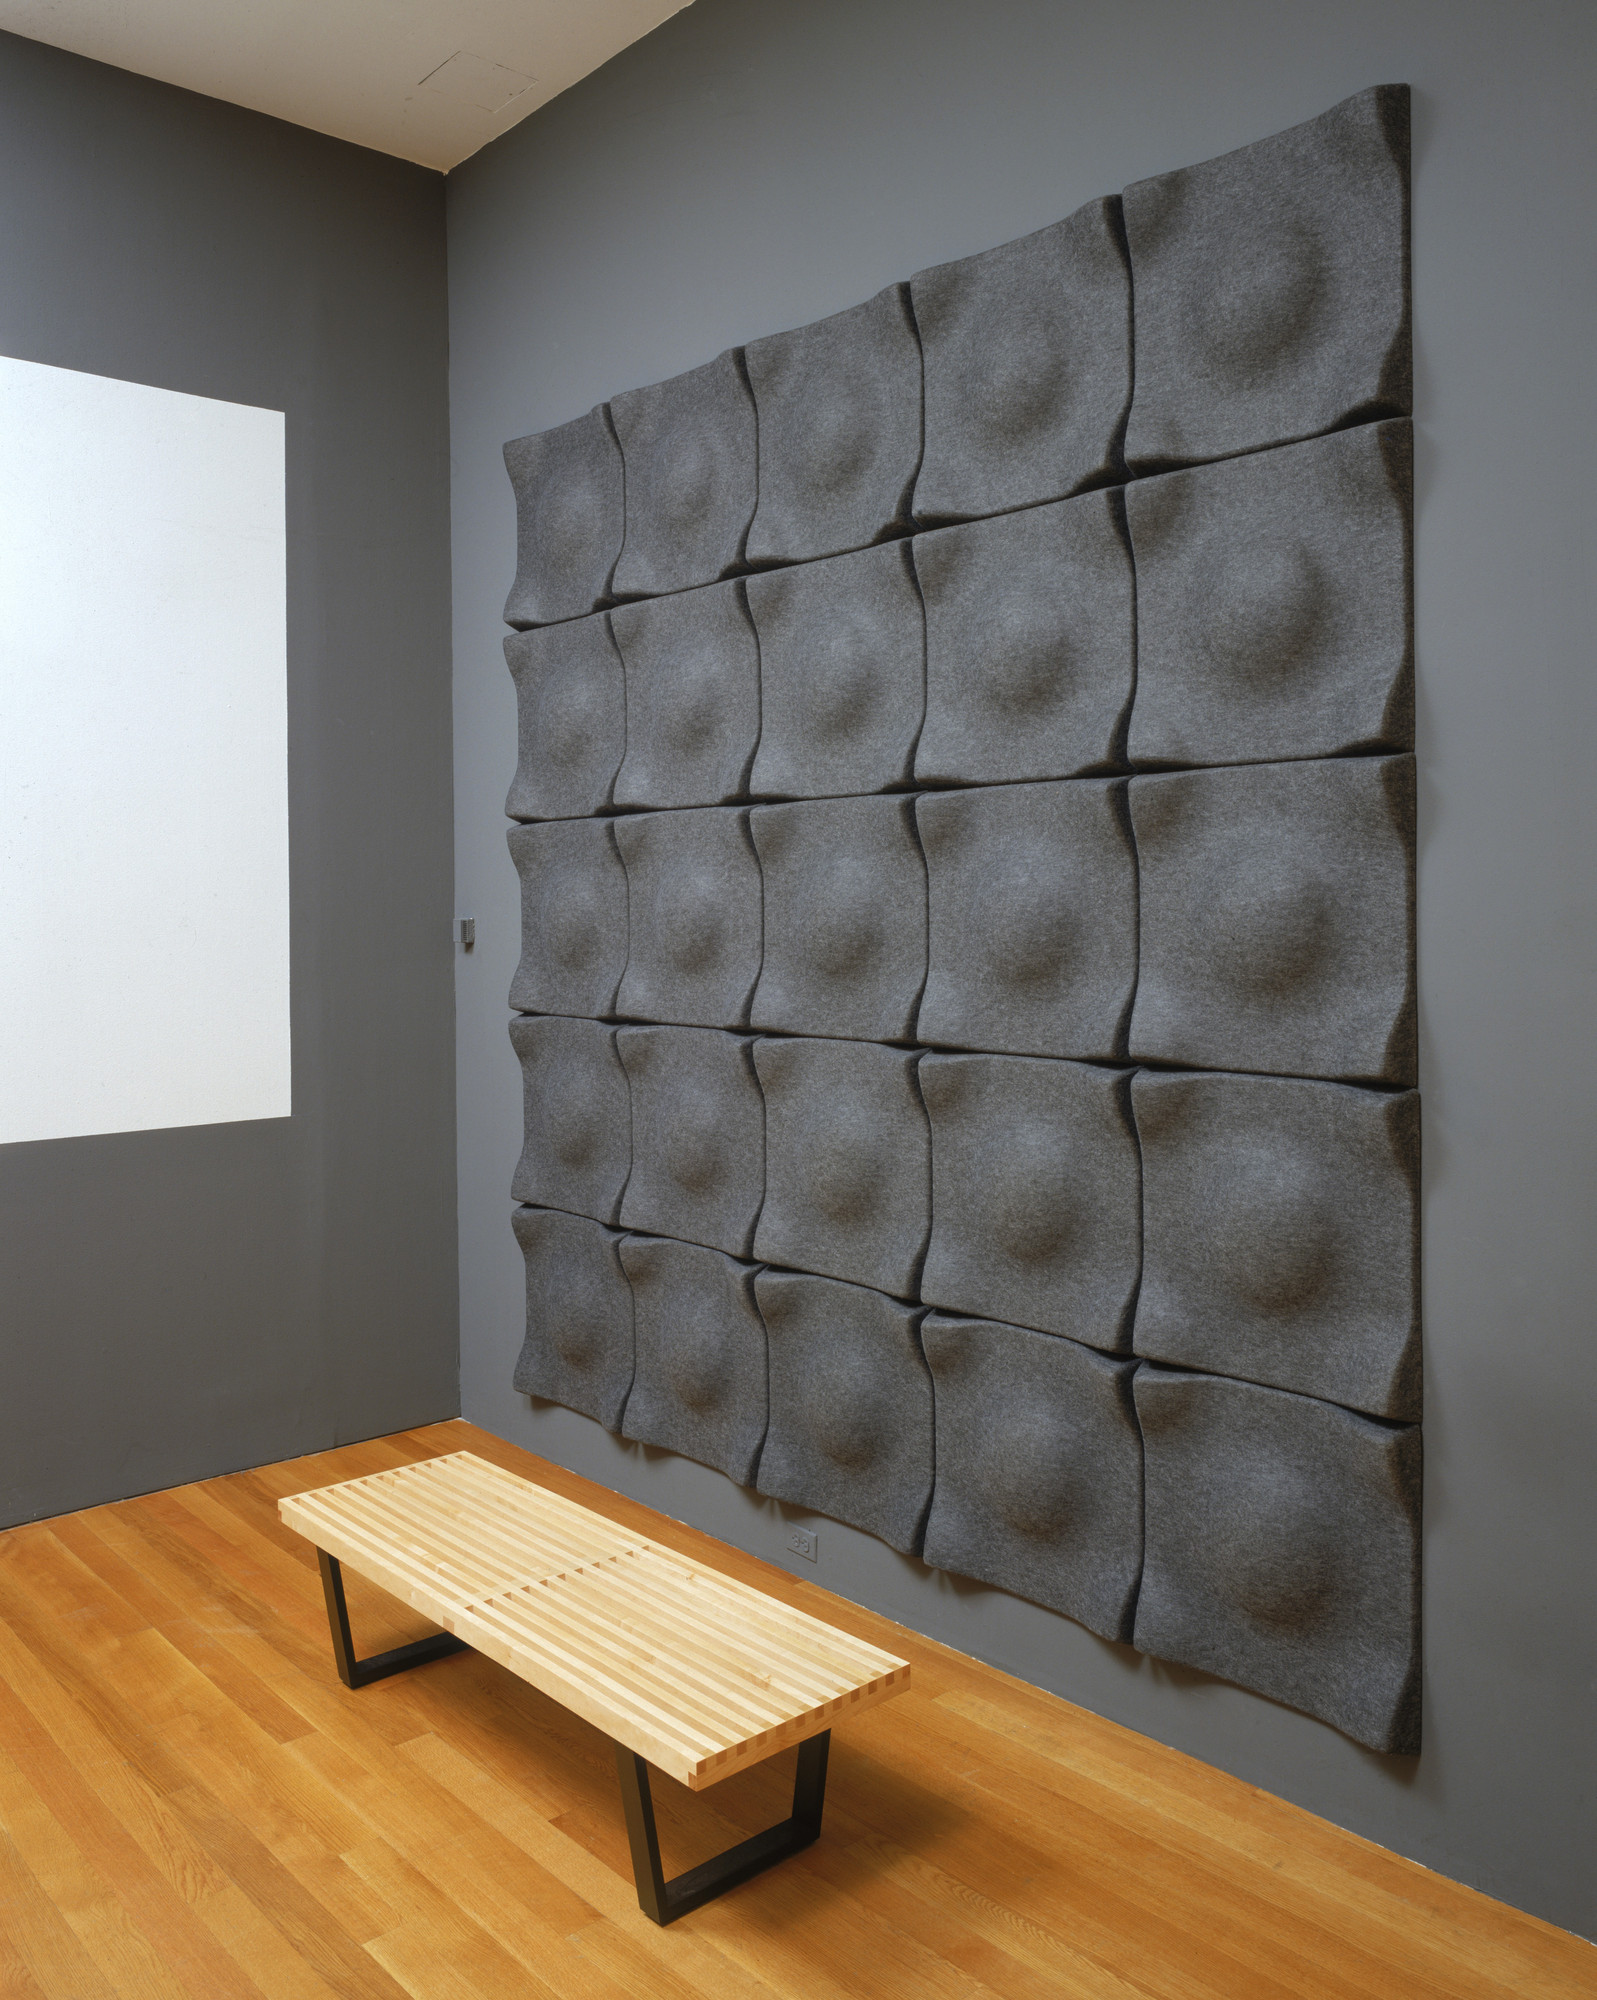 Teppo Asikainen, OFFECCT. Swell Soundwave Panels. 1999-2000